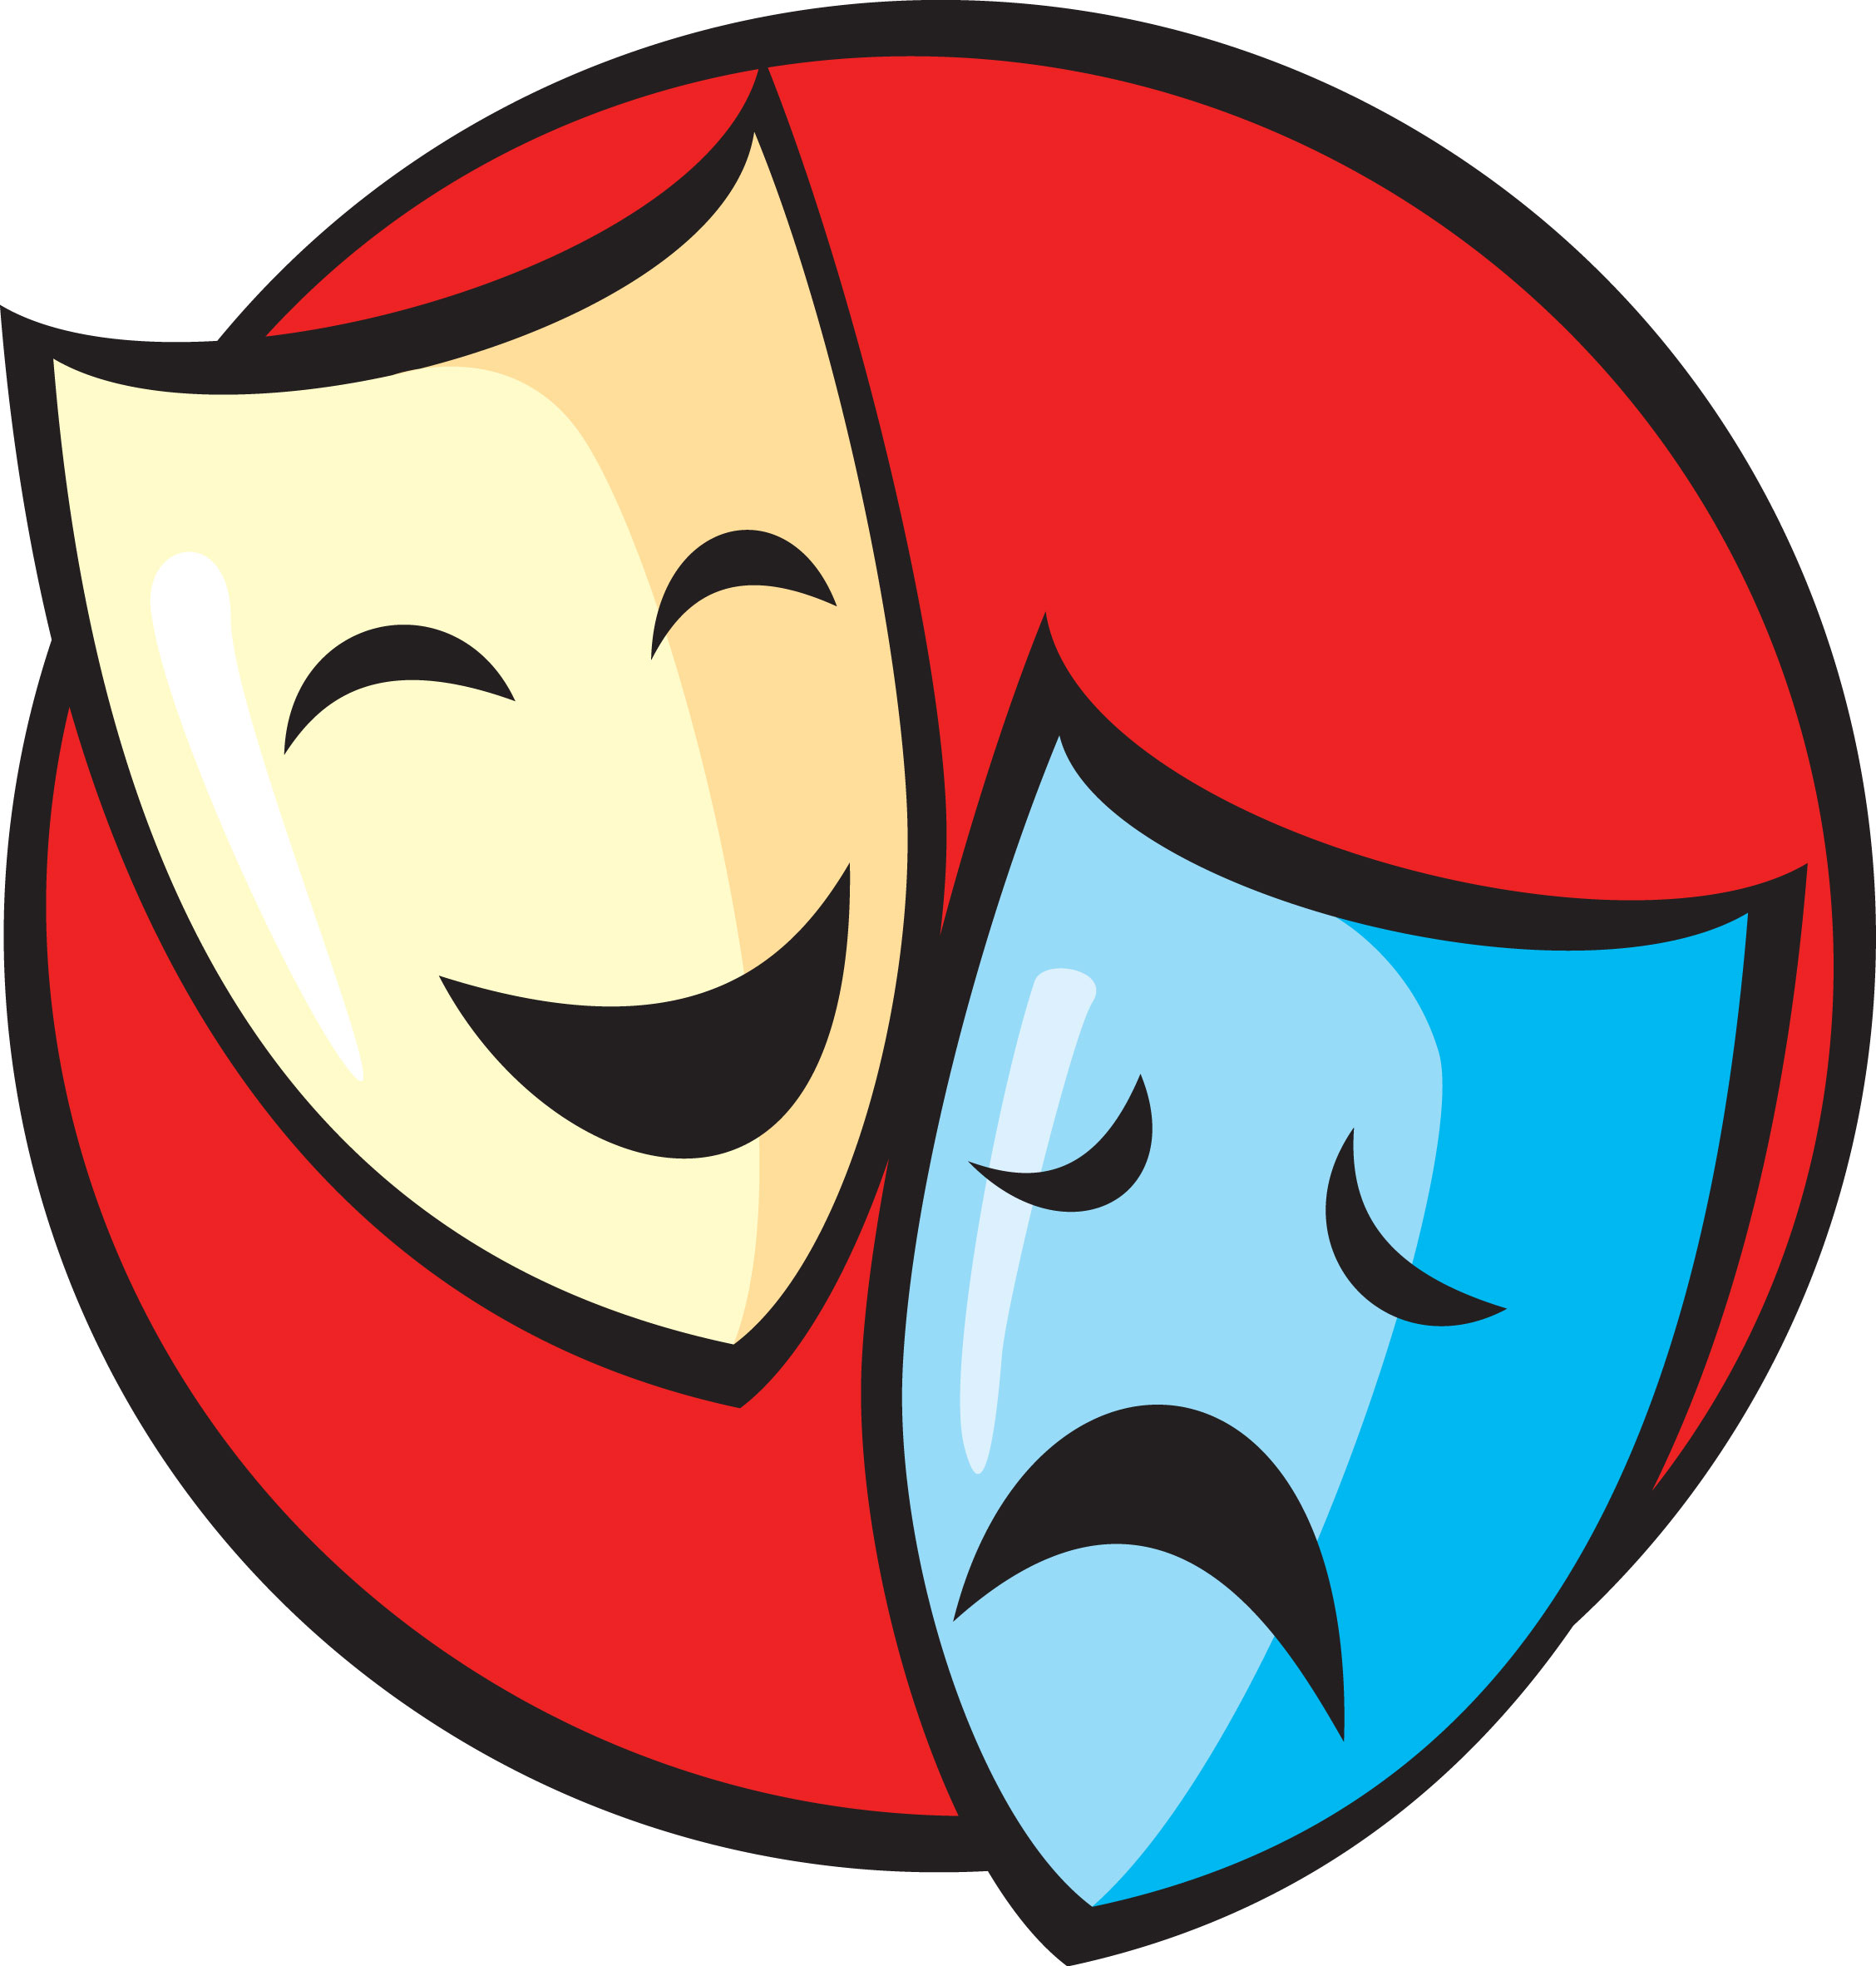 Drama clipart drama symbol. Club meeting wilson middle